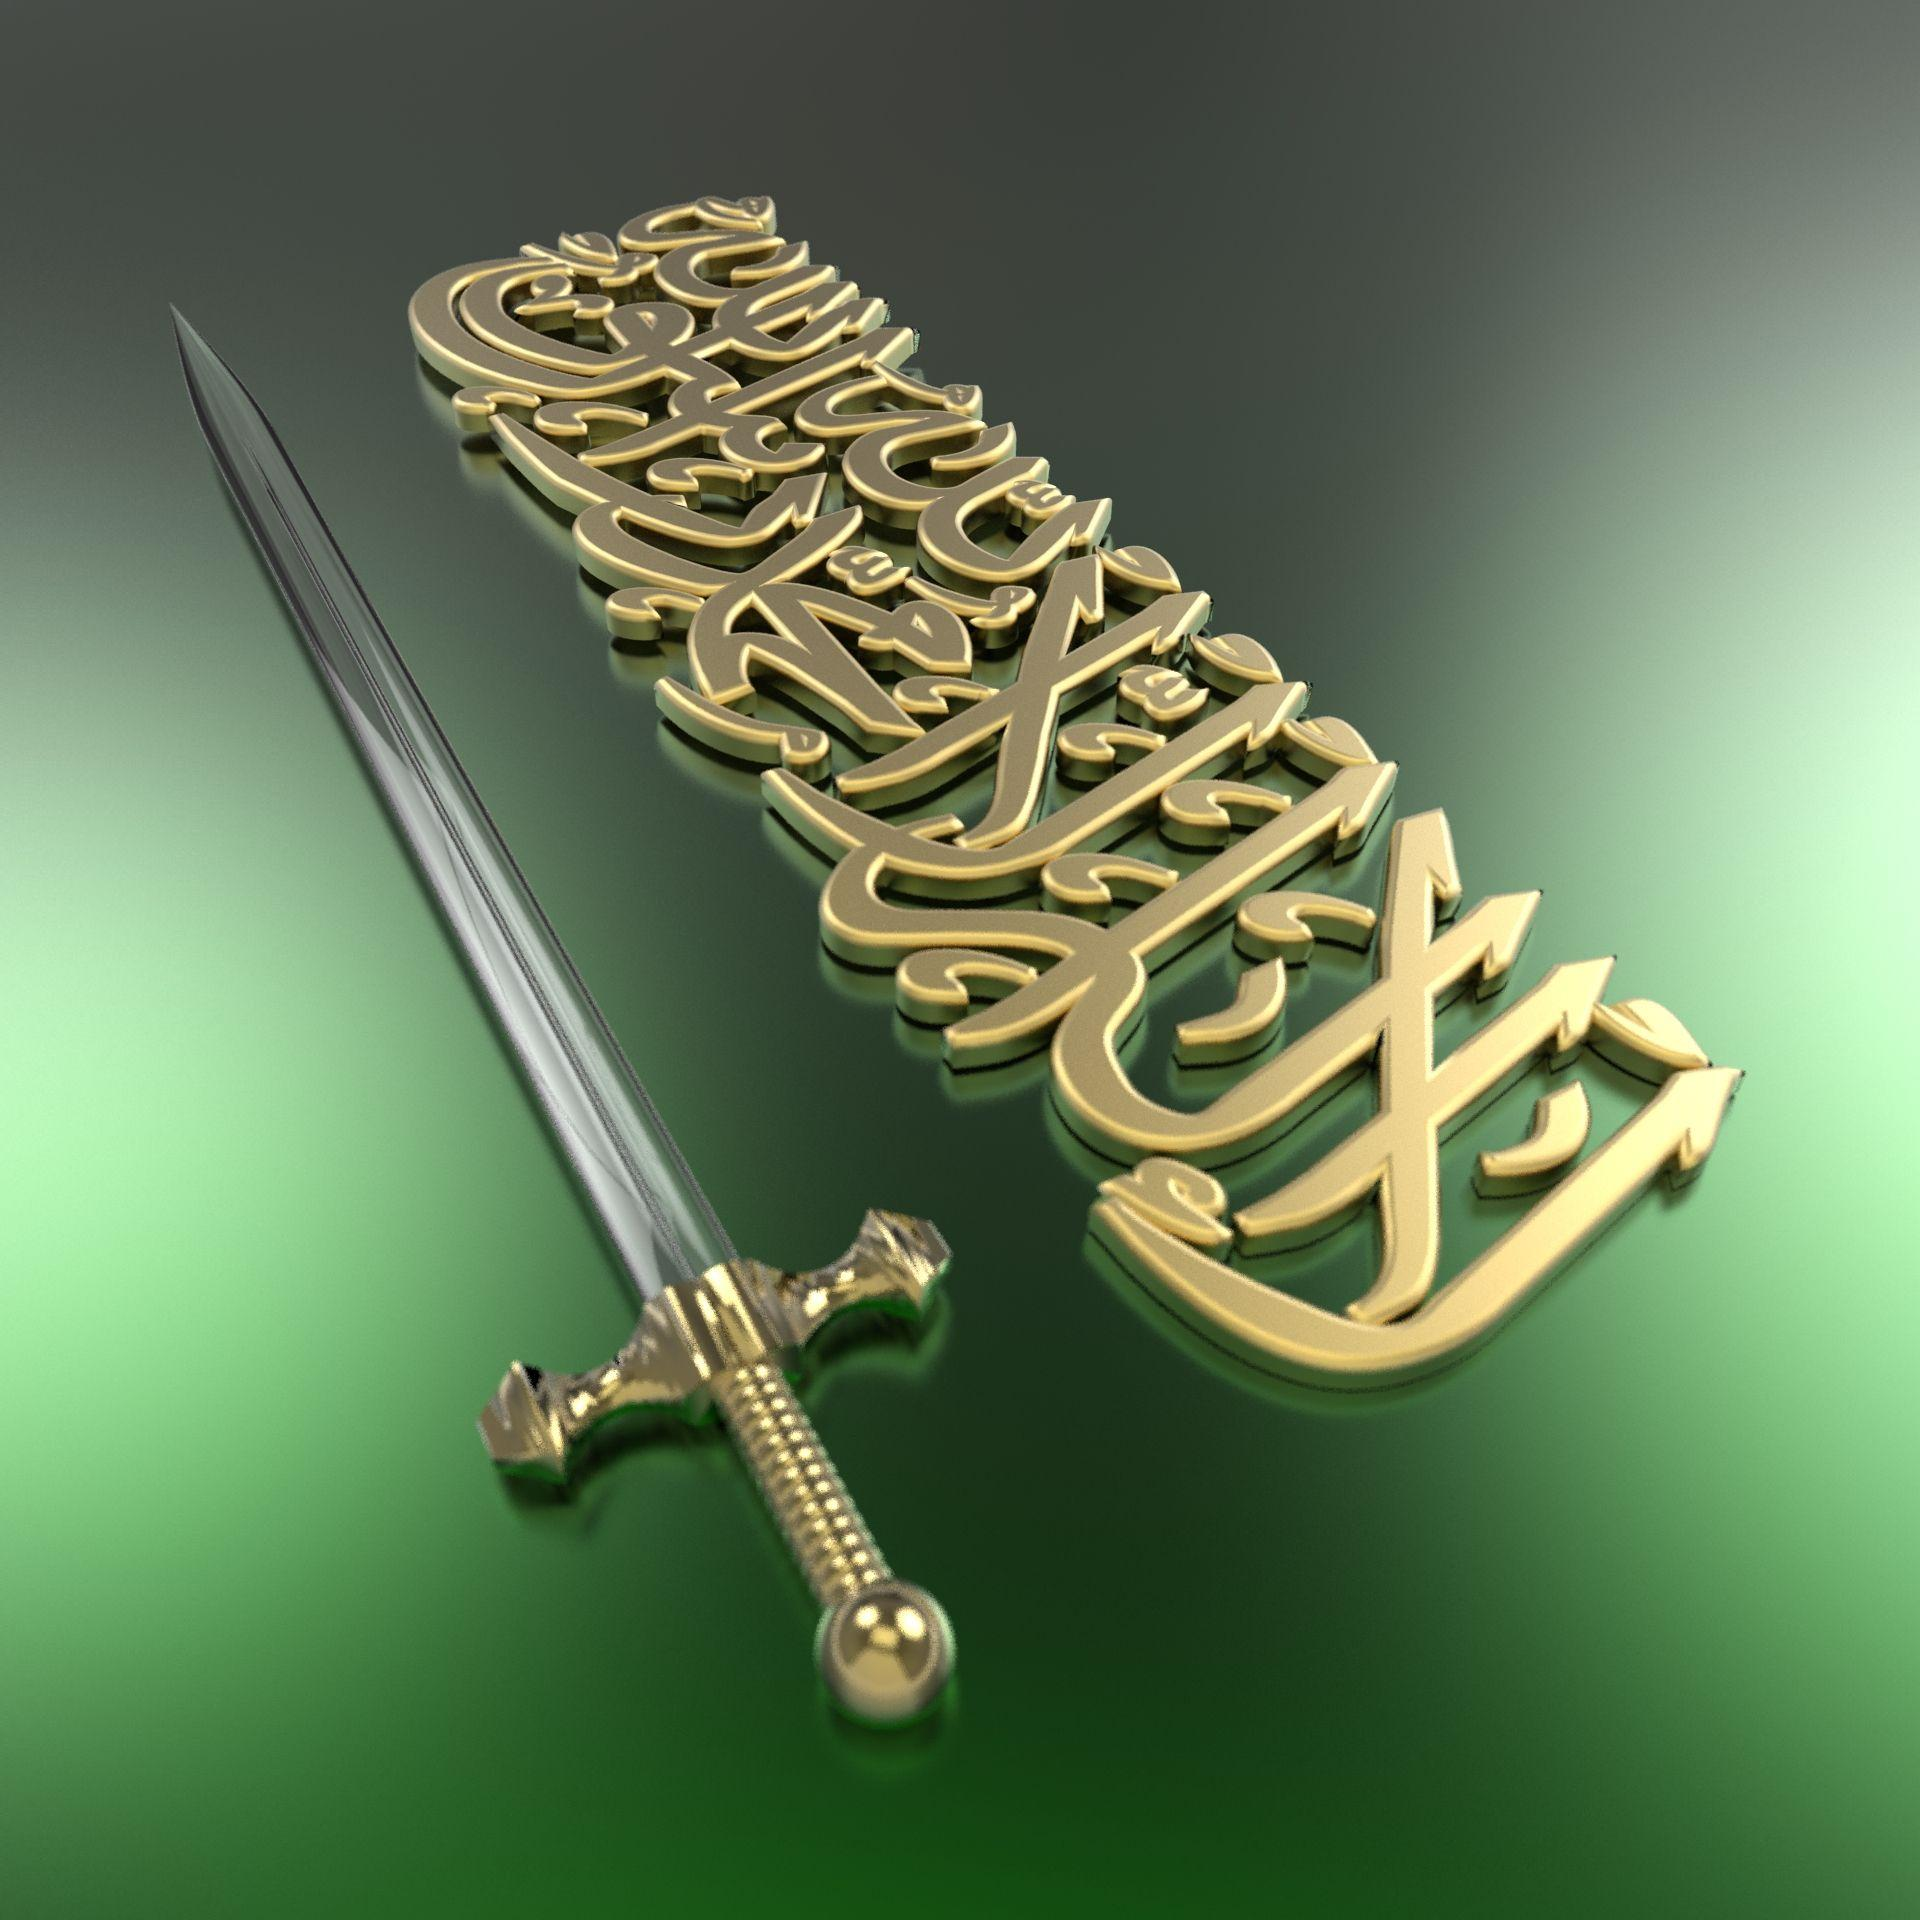 Wallpapers 3D Kaligrafi Islam Wallpaper Cave